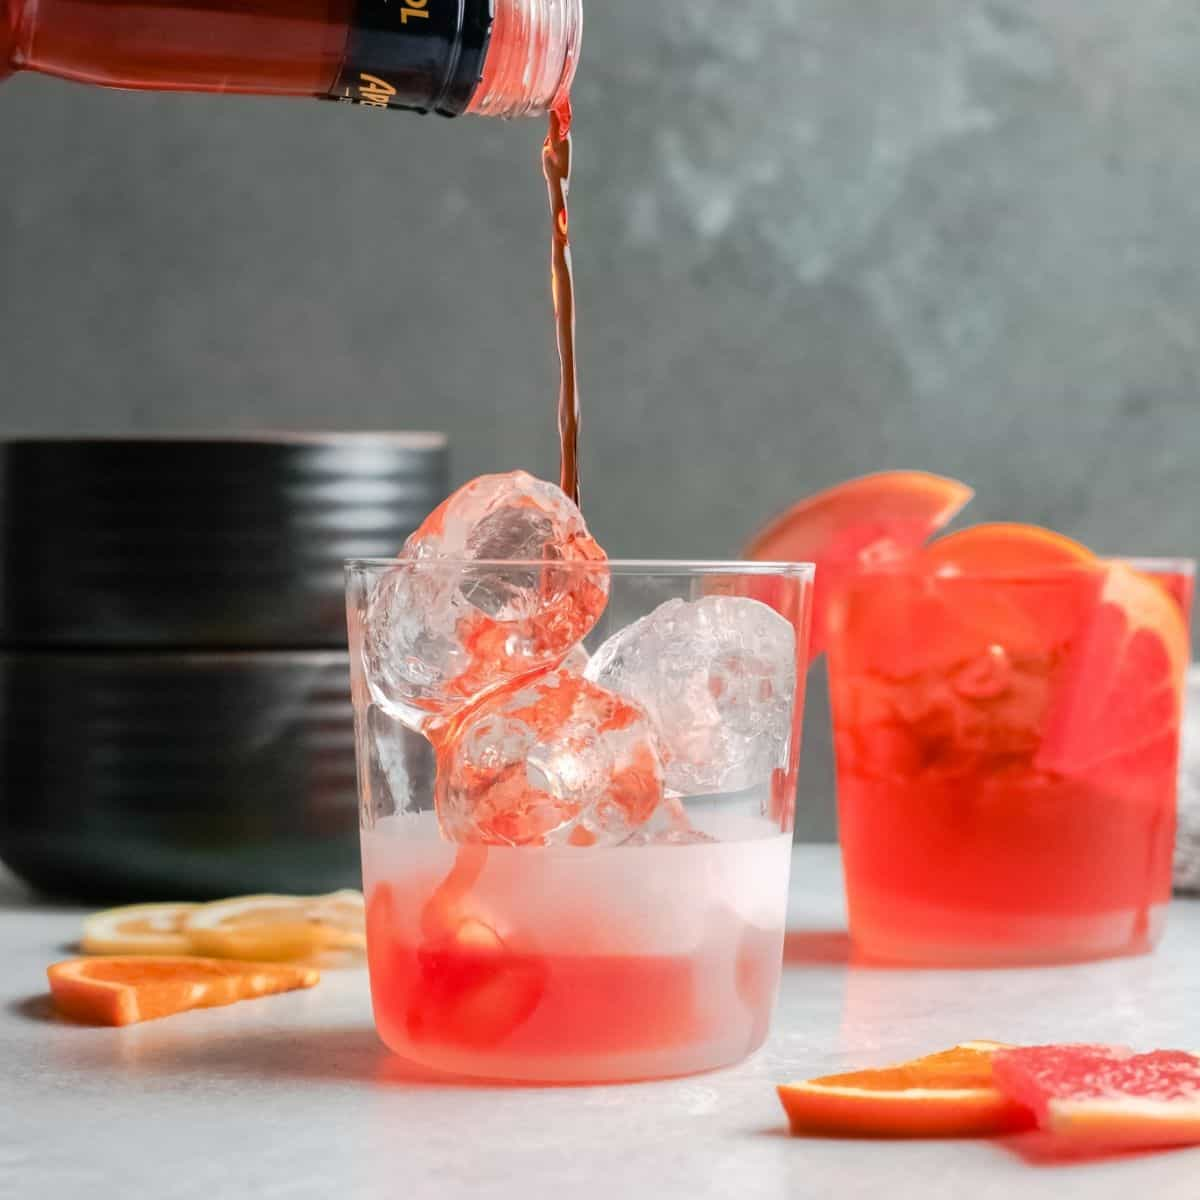 Aperol liquor being poured into a clear glass filled with ice.